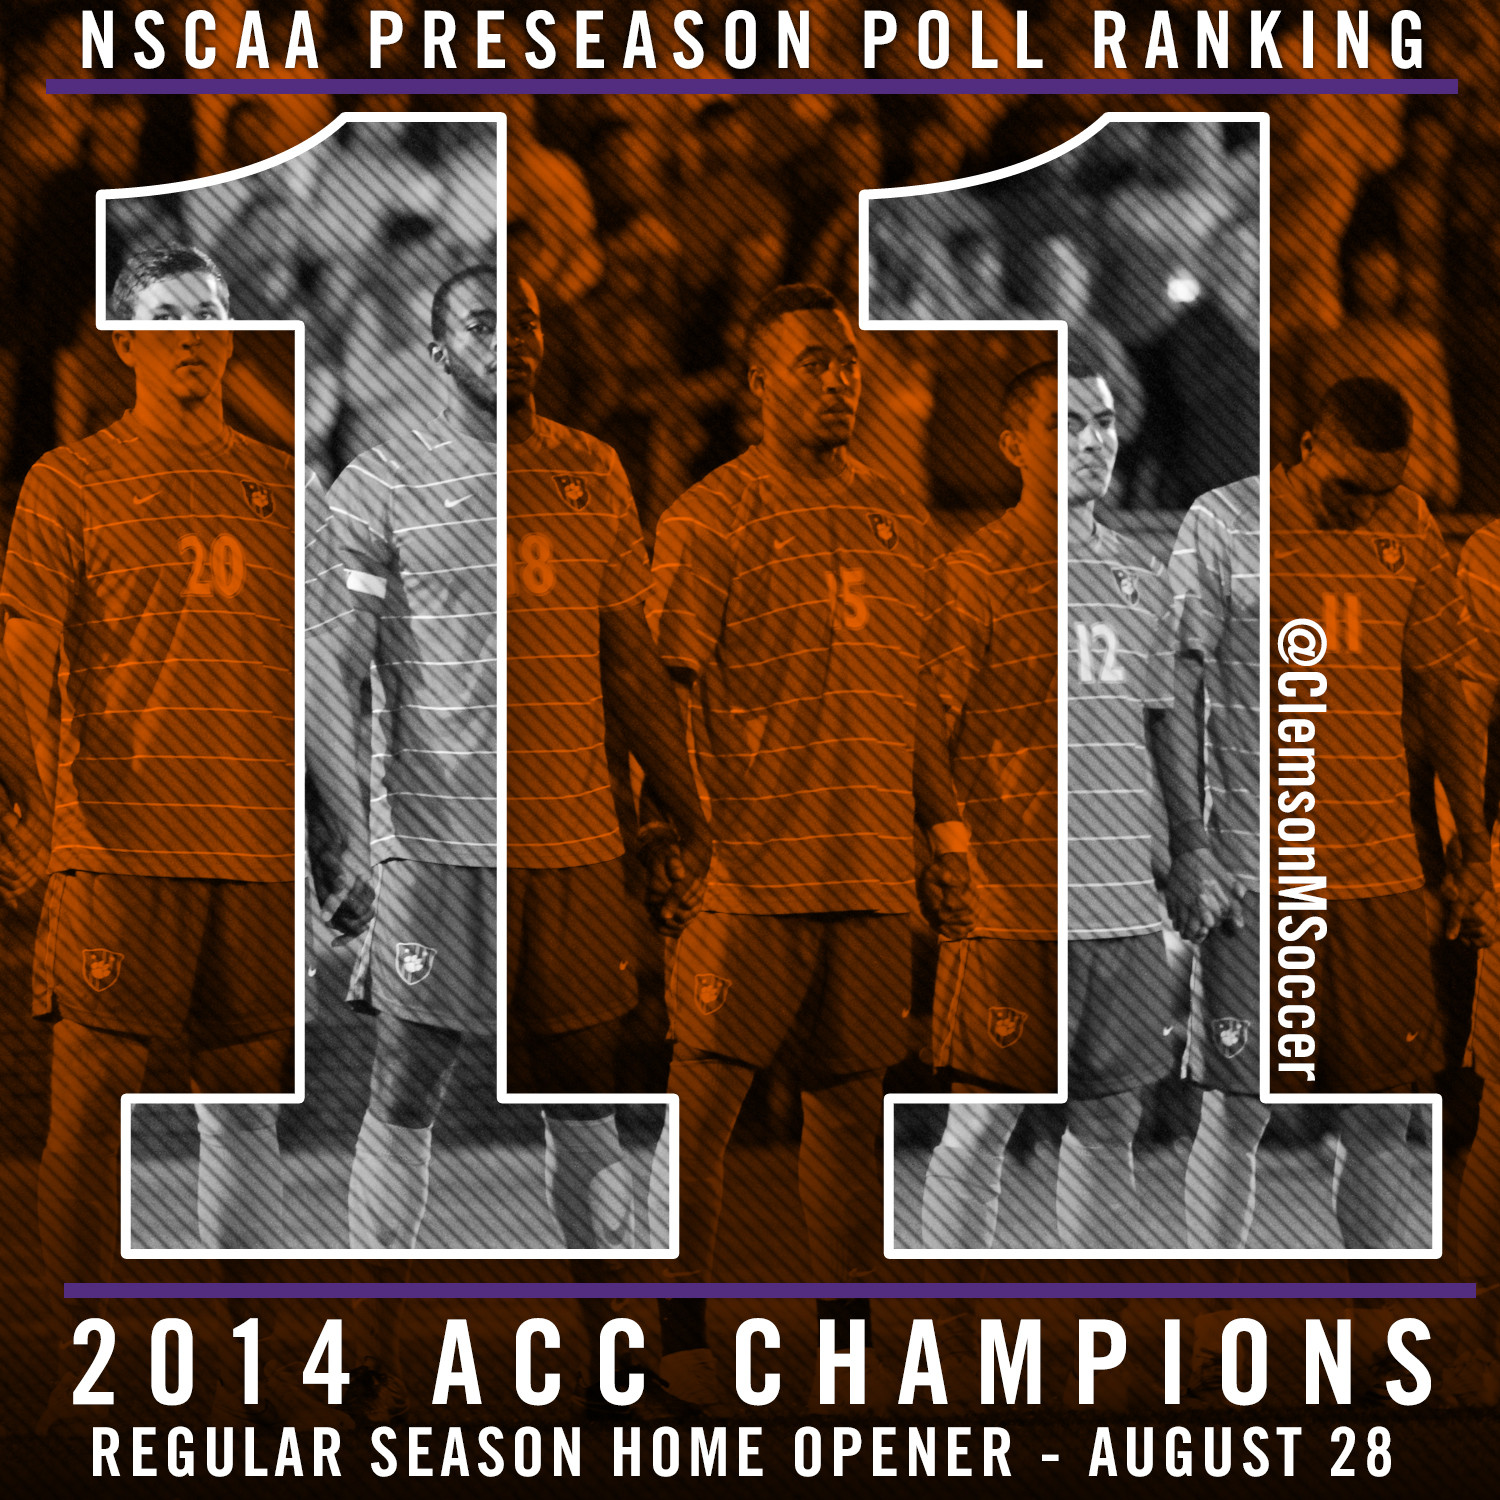 Clemson Ranked 11th in NSCAA Preseason Poll